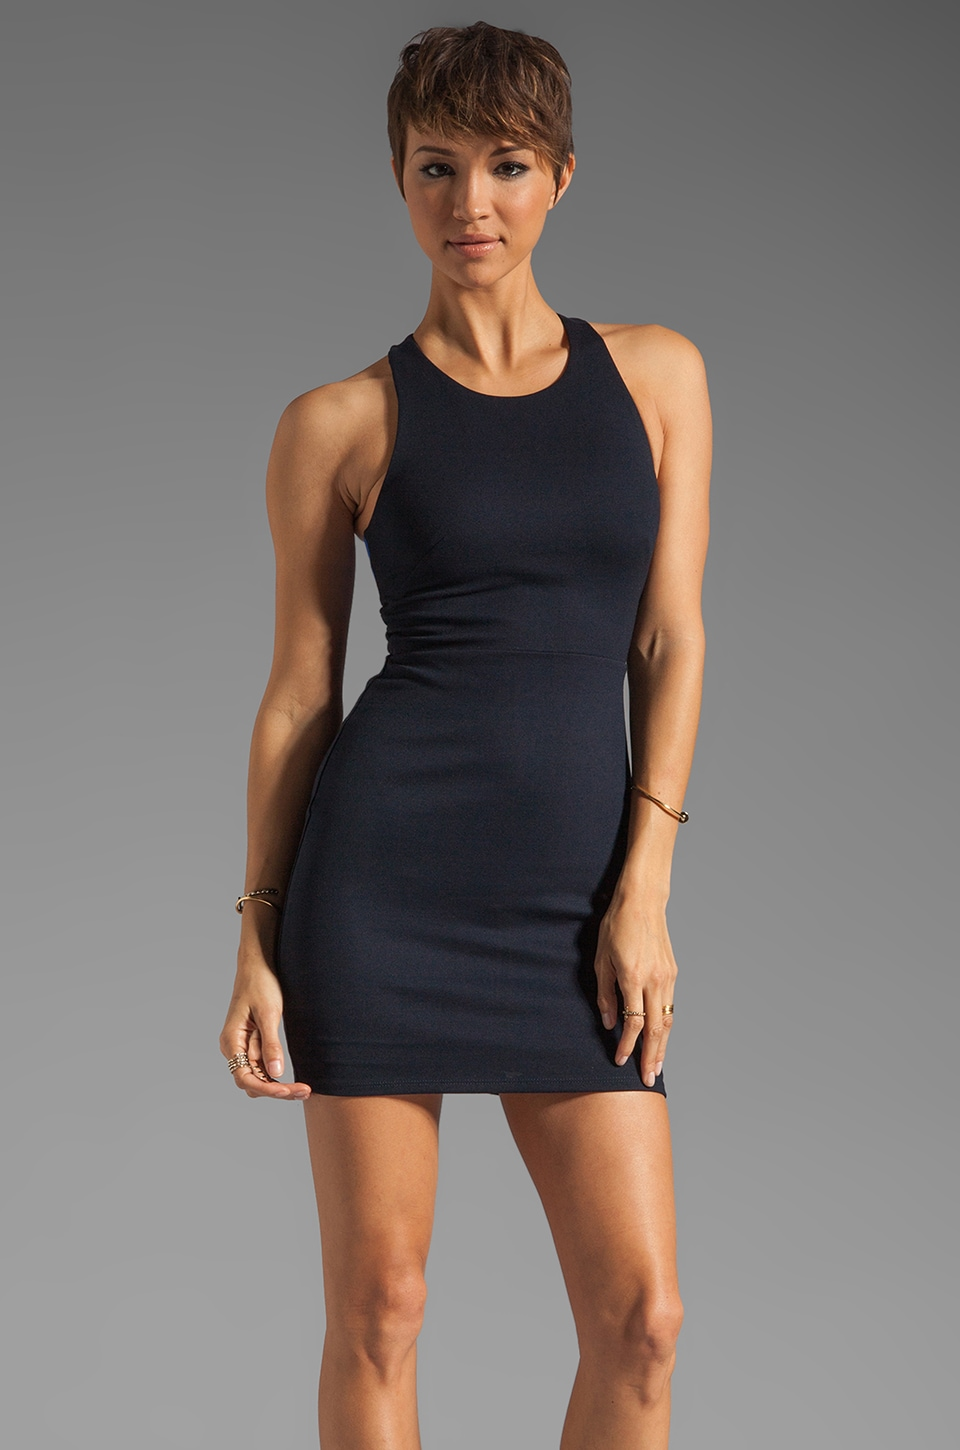 Bailey 44 Anti Doping Dress in Navy/Blue